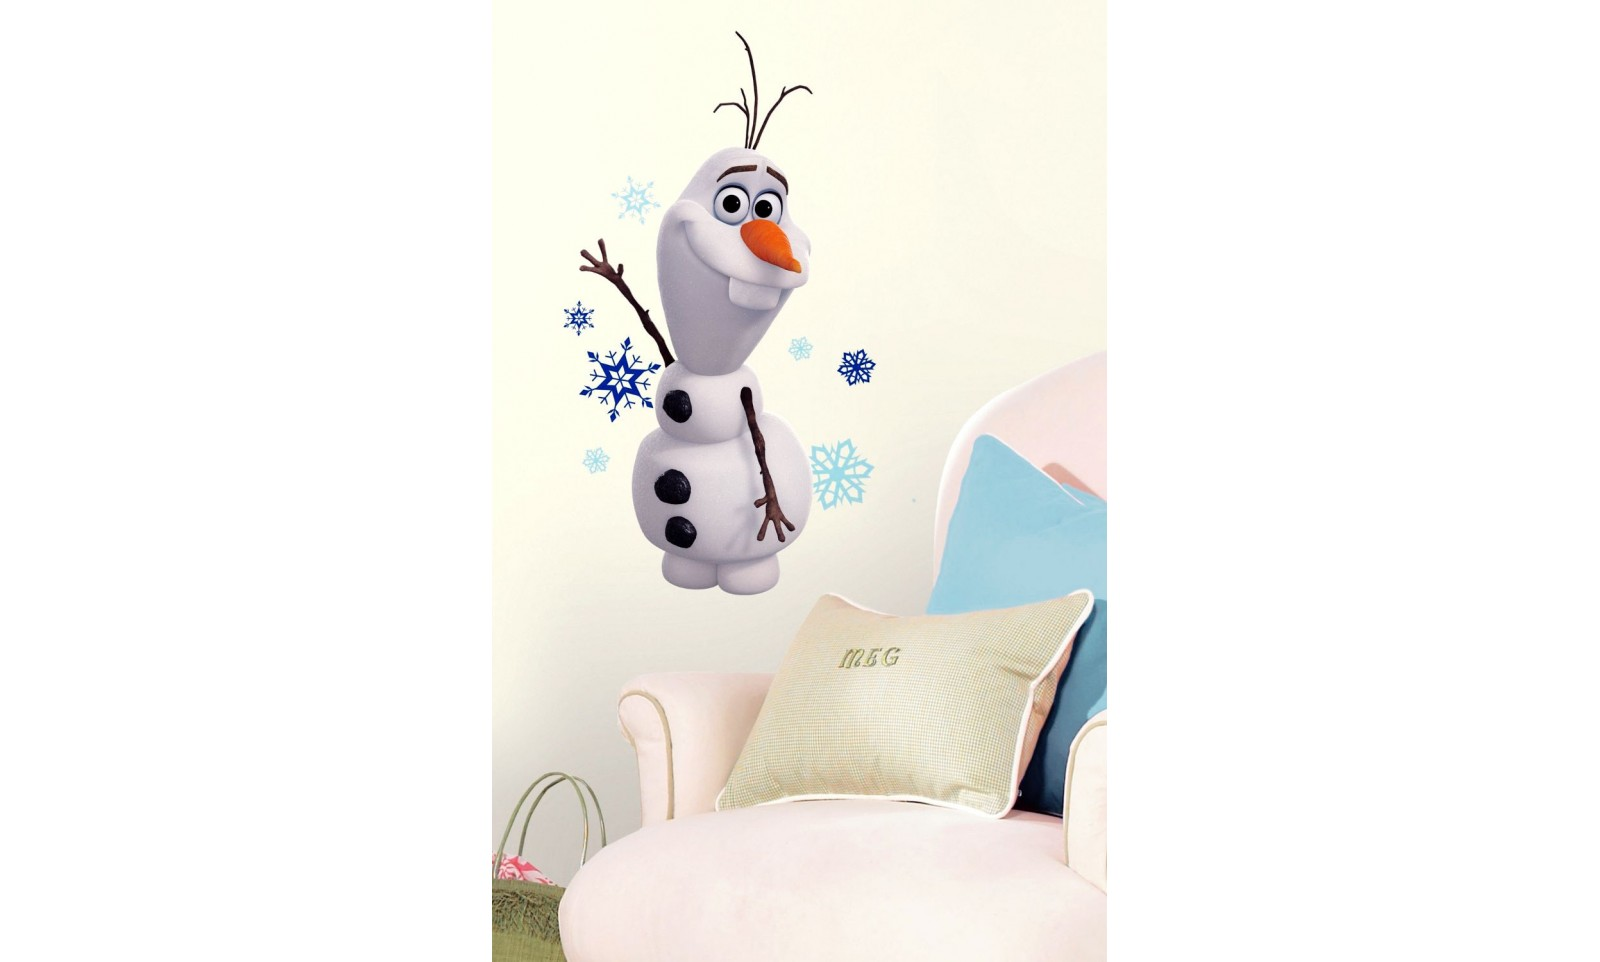 La reine des neiges stickers olaf d co film cin ma - Reine des neiges olaf ...